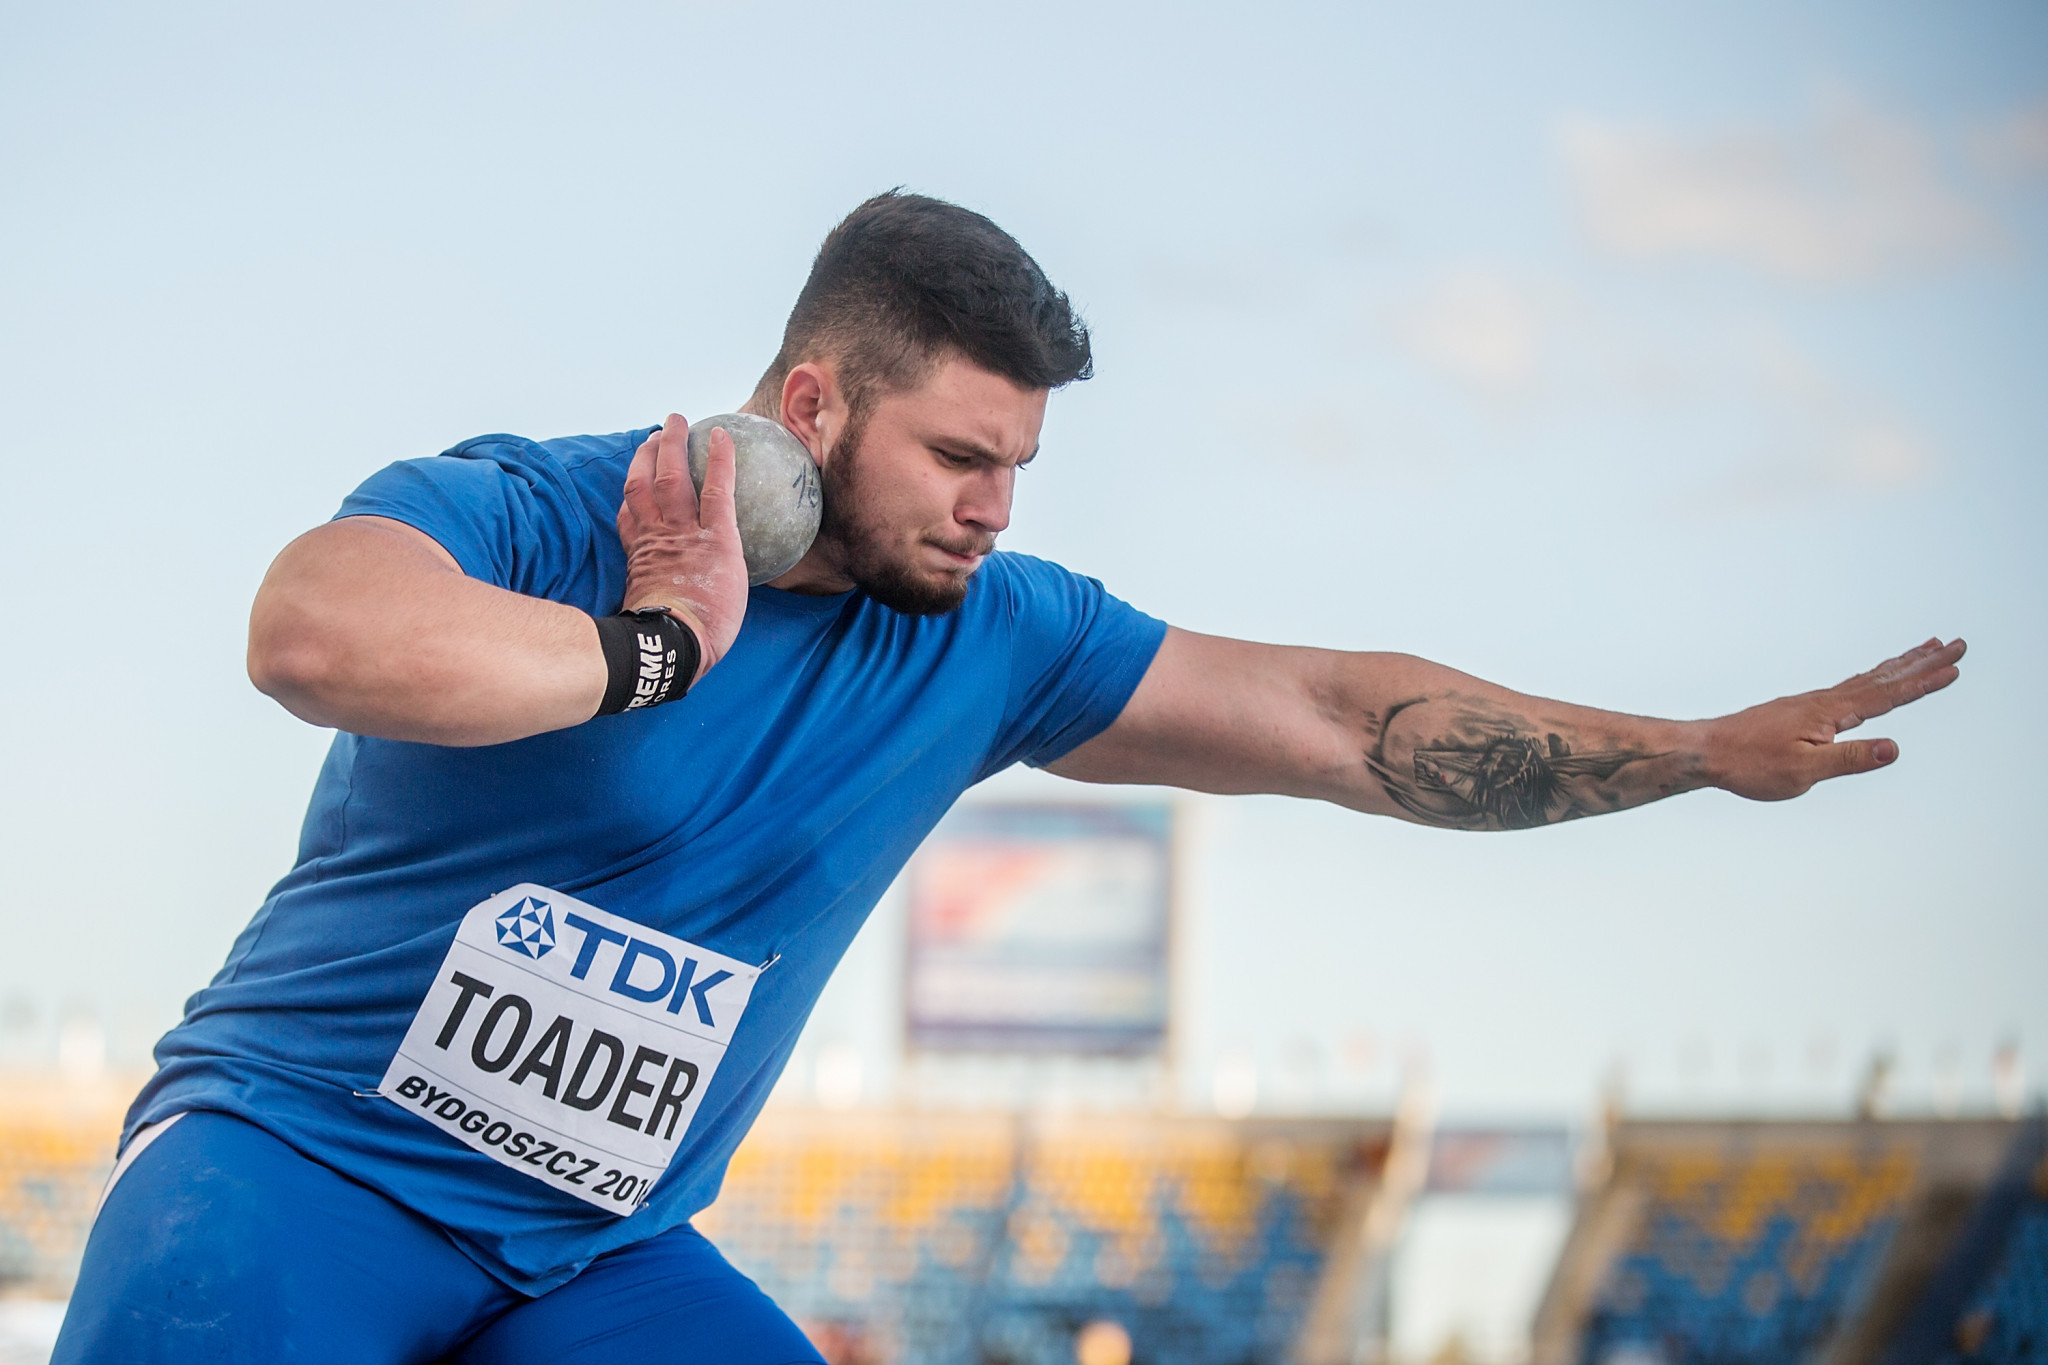 Romanian becomes second shot put gold medallist at 2016 World U20 Championships stripped of title after positive test